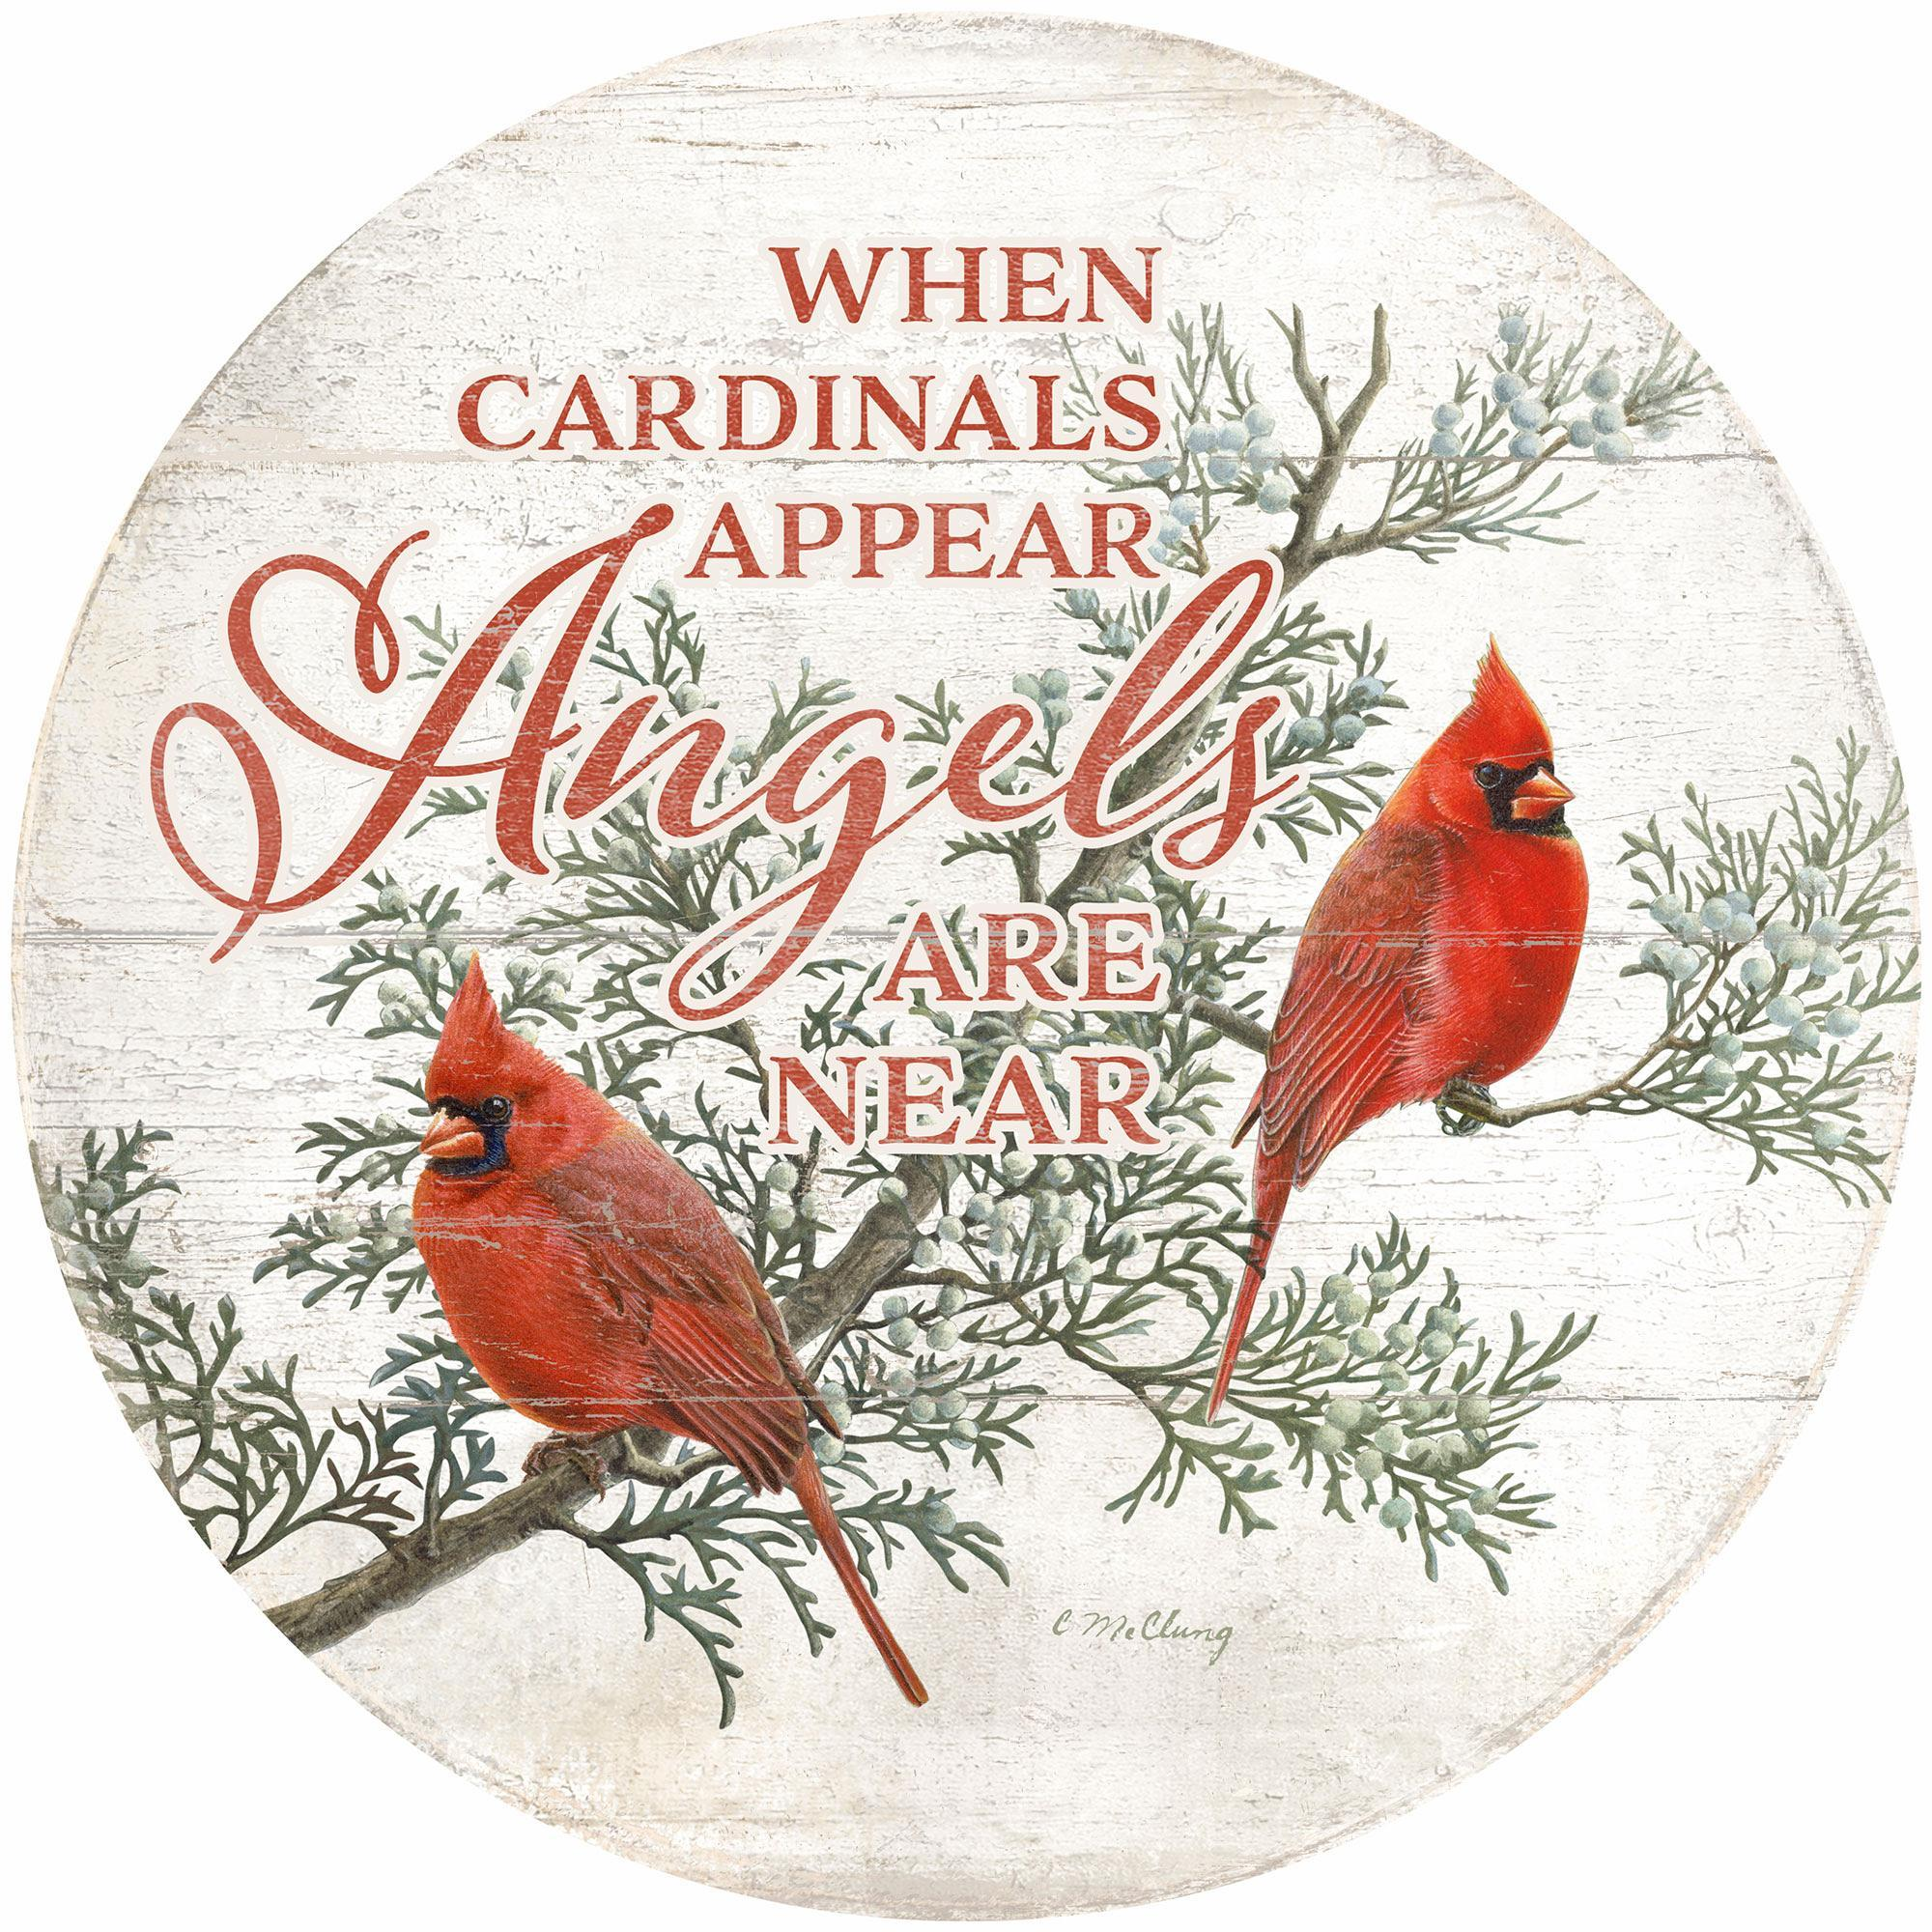 Angels are Near—Cardinals.